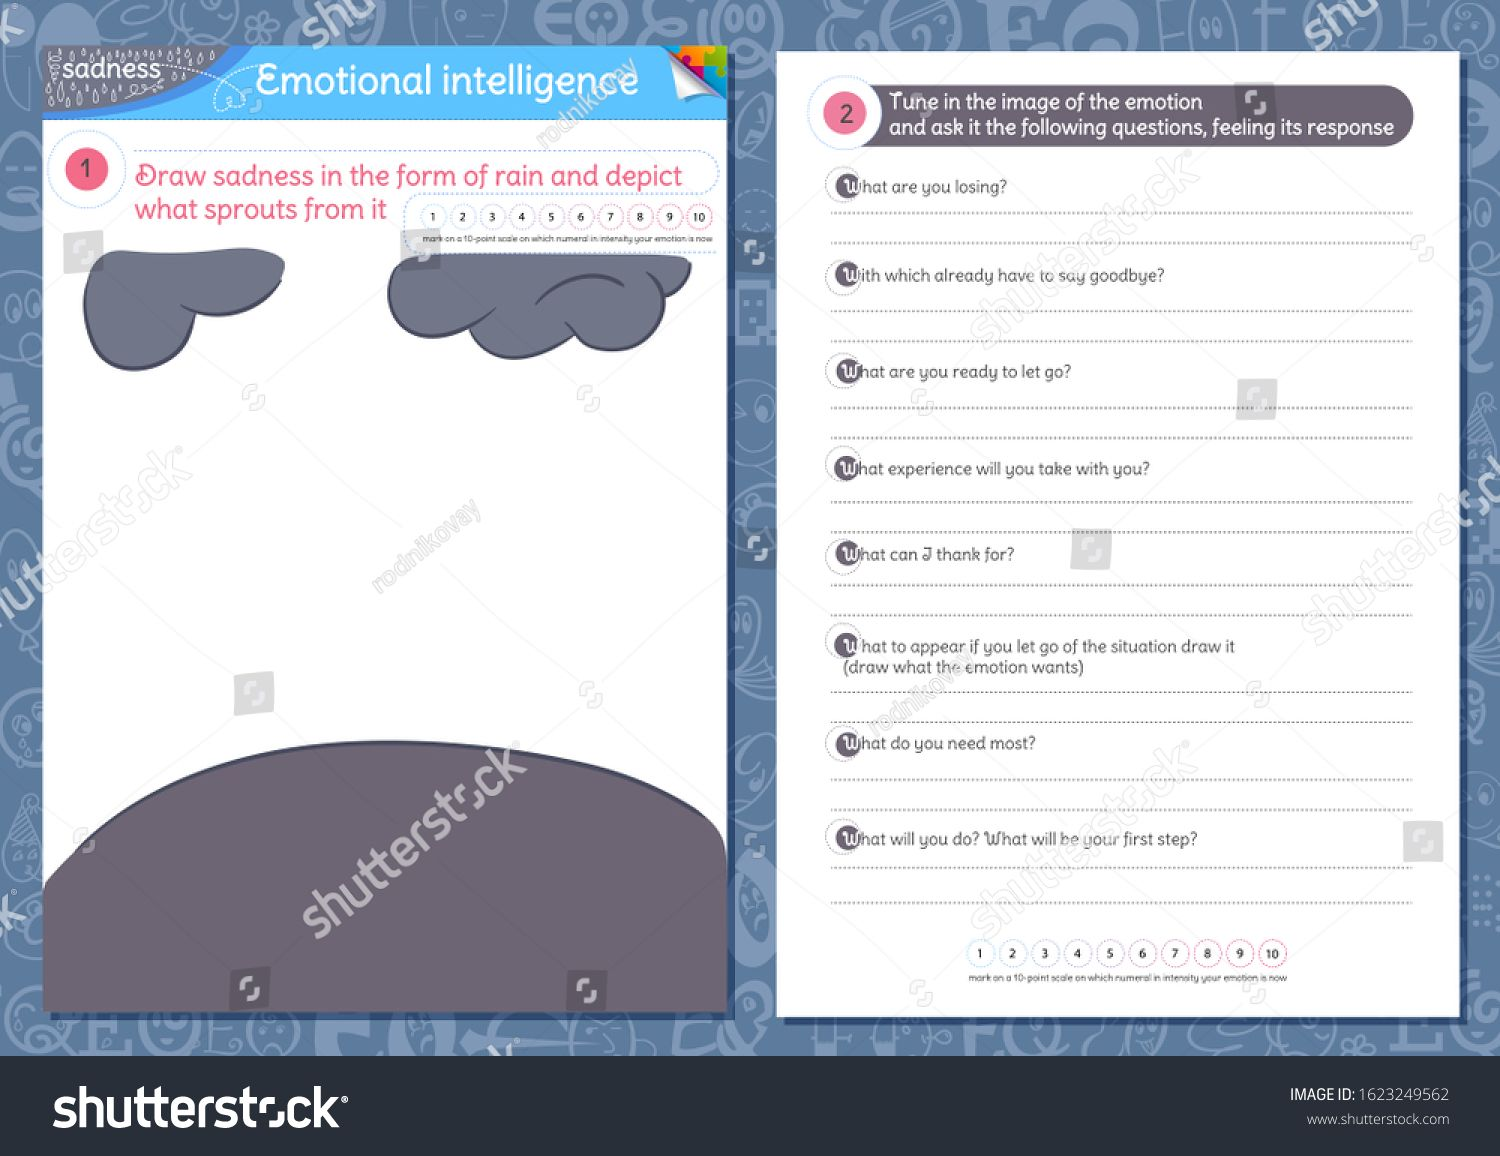 Educational Game For Children And Adults On The Study Of Emotional